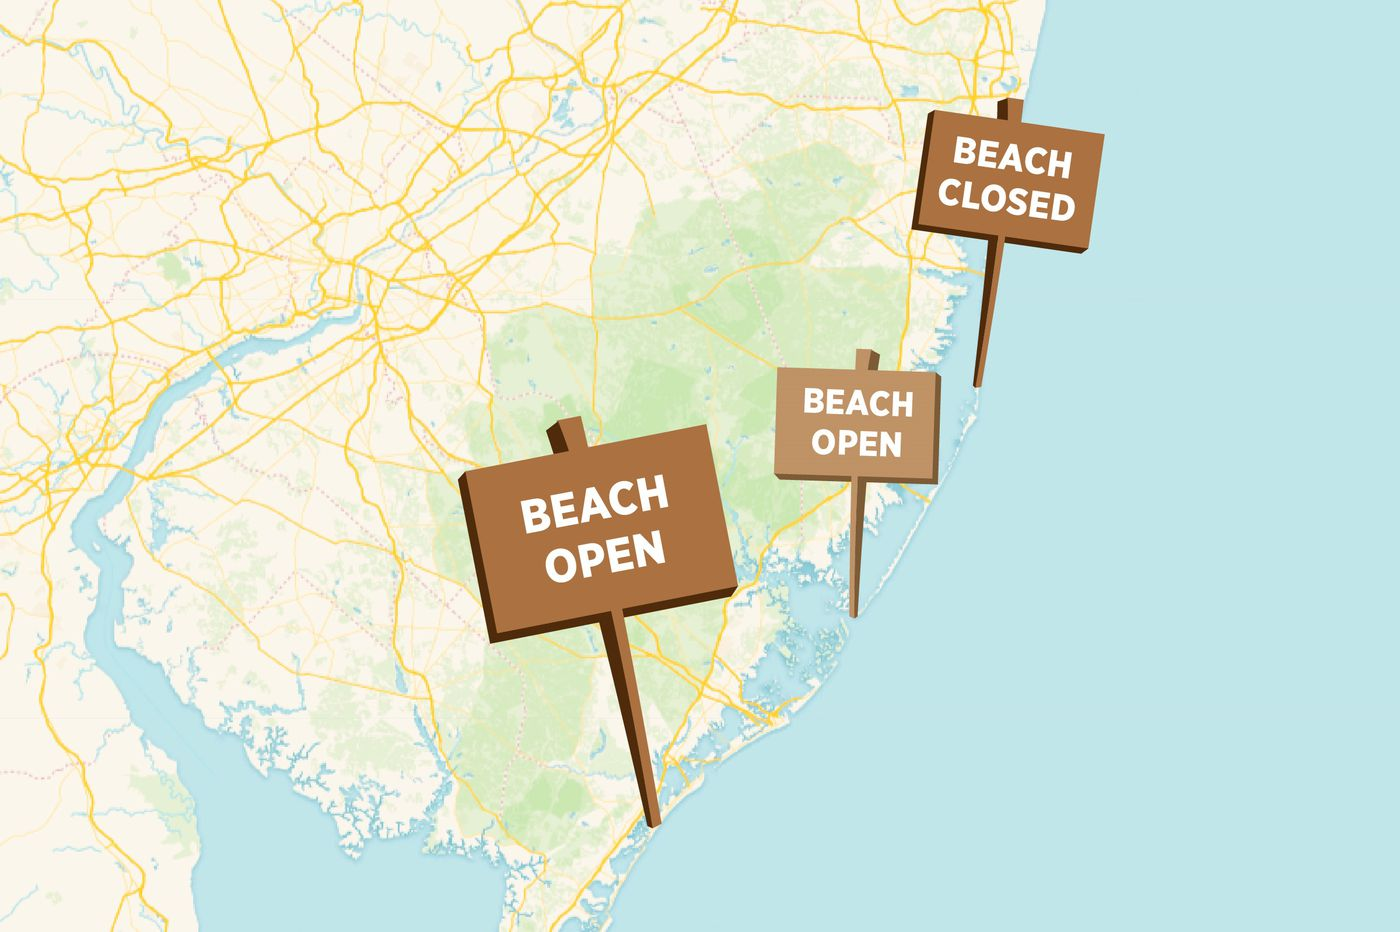 Our Shore and Delaware beach closings map will help you plan your summer trips